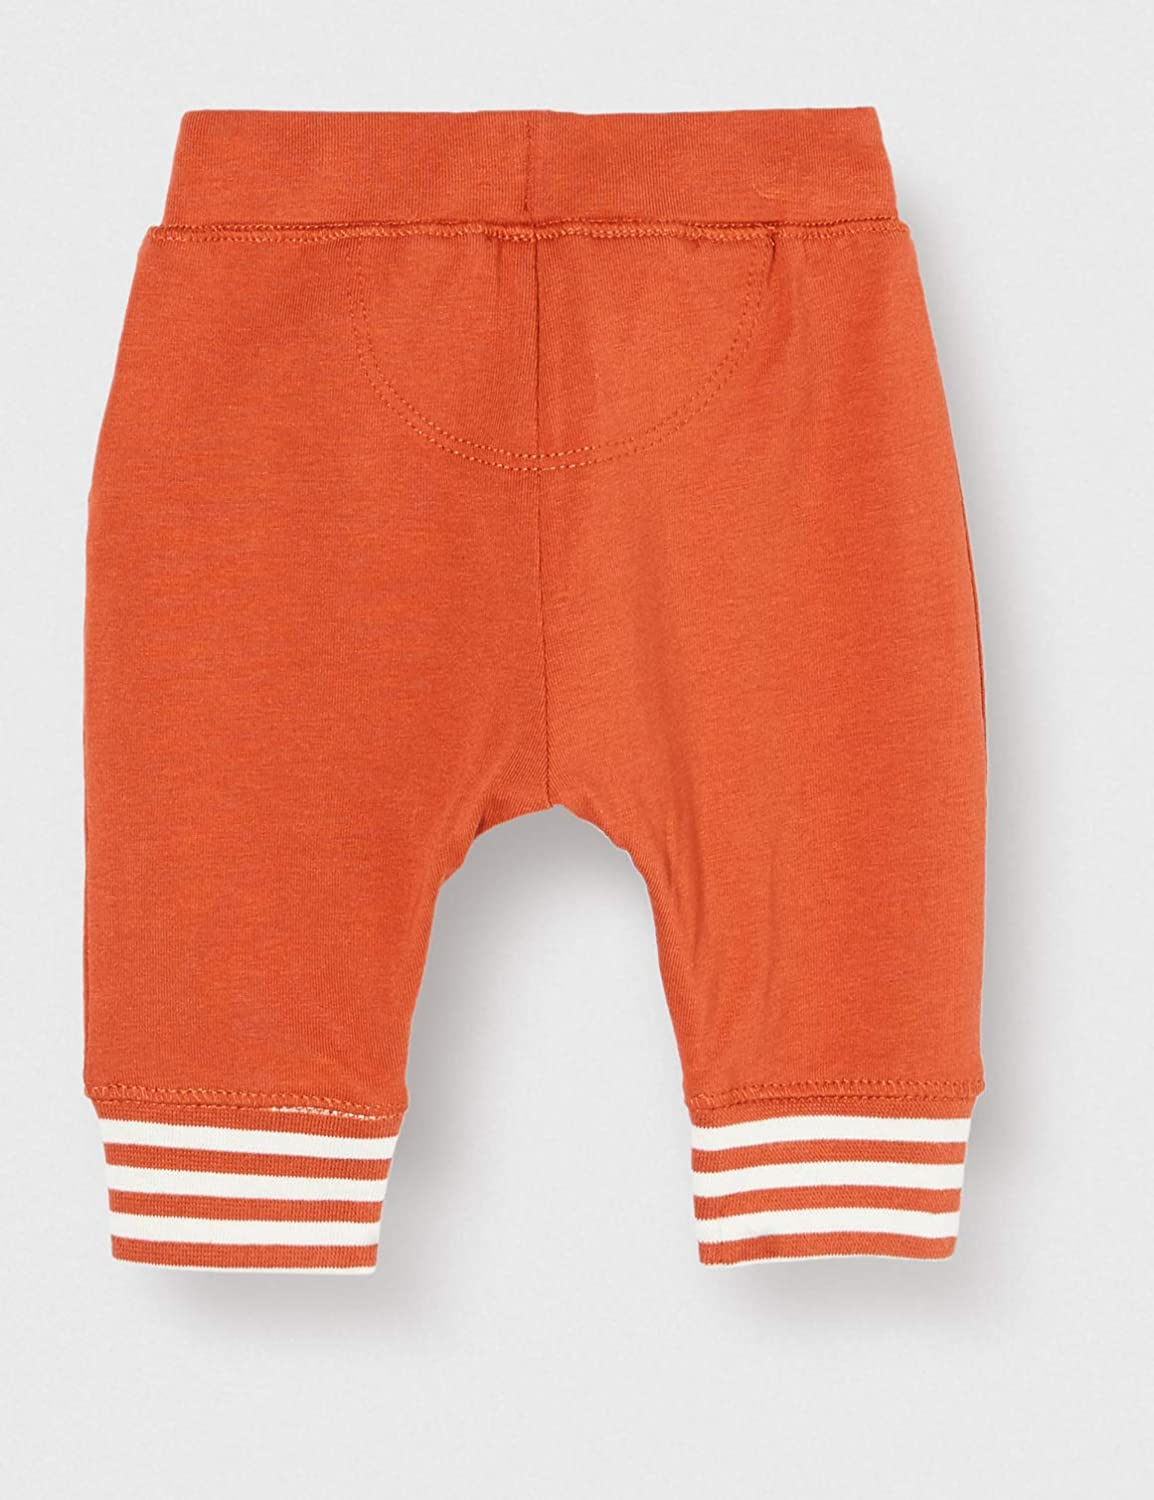 Noppies Unisex Baby U Relaxed Fit Pants Annei Hose